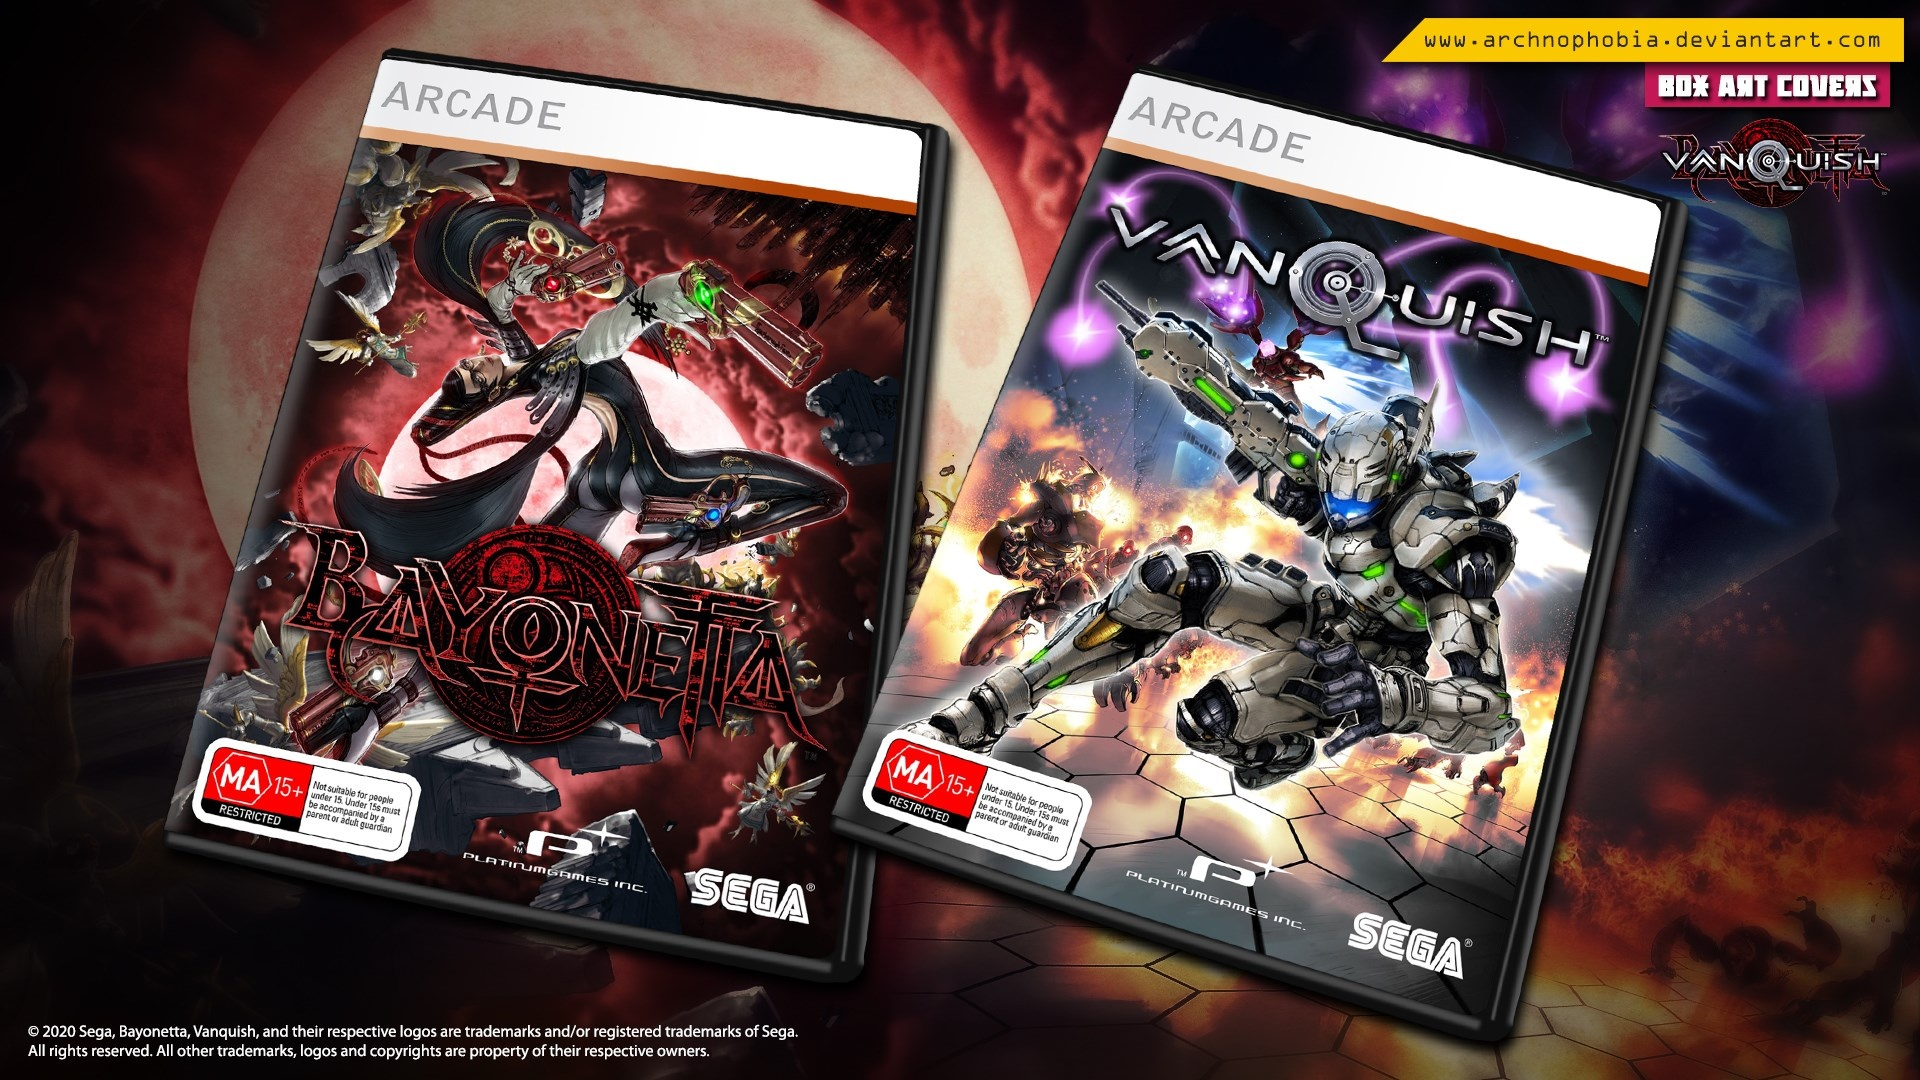 Bayonetta & Vanquish DVD Preview box cover